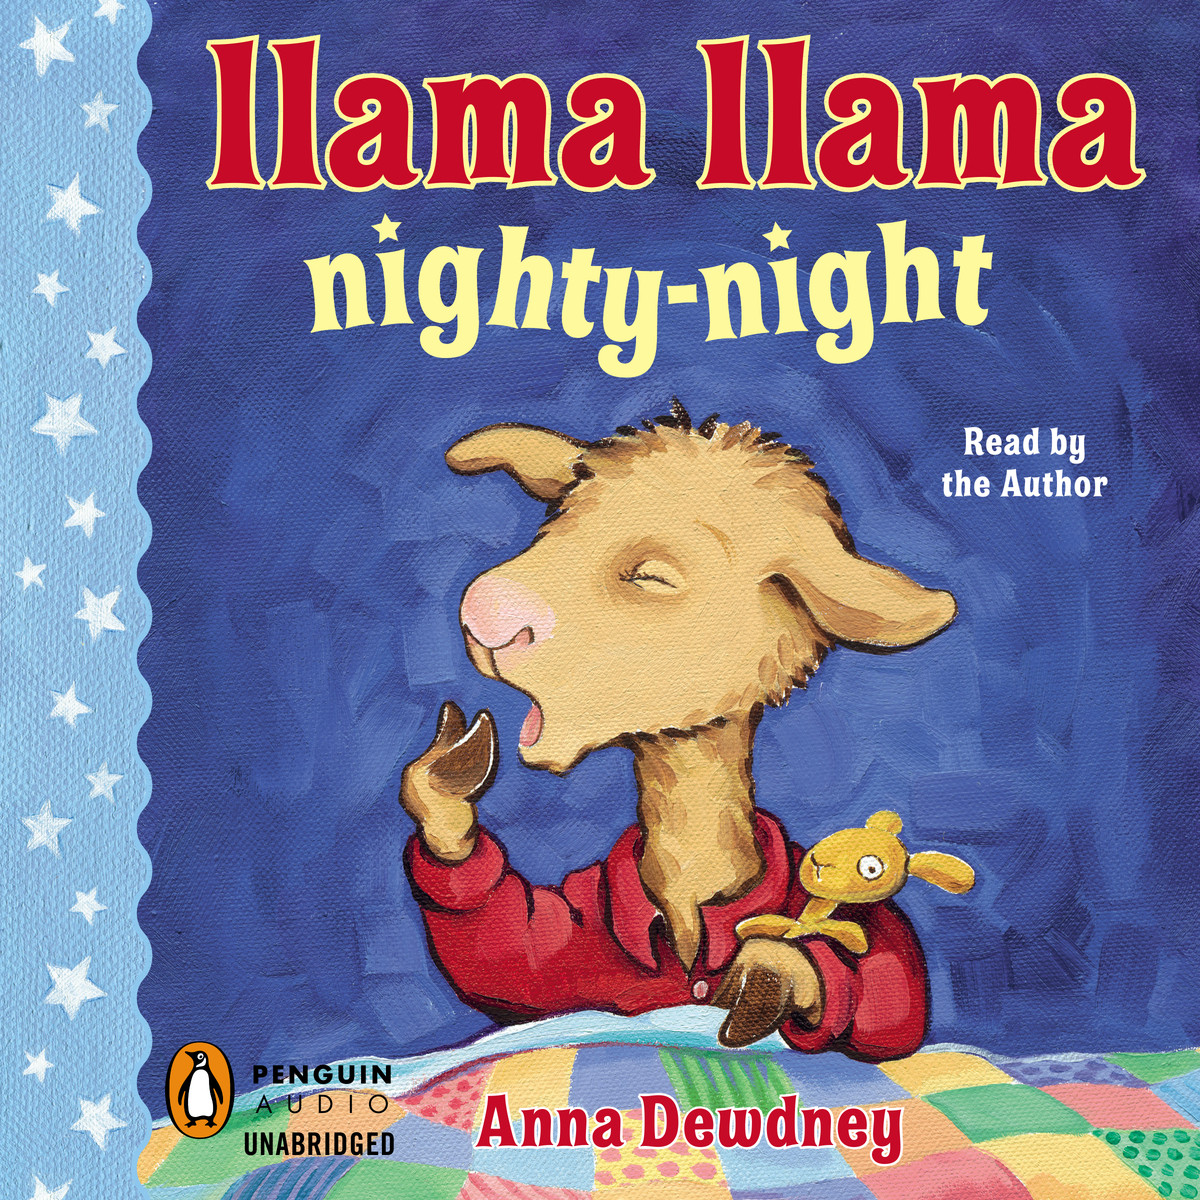 Printable Llama Llama Nighty-Night Audiobook Cover Art